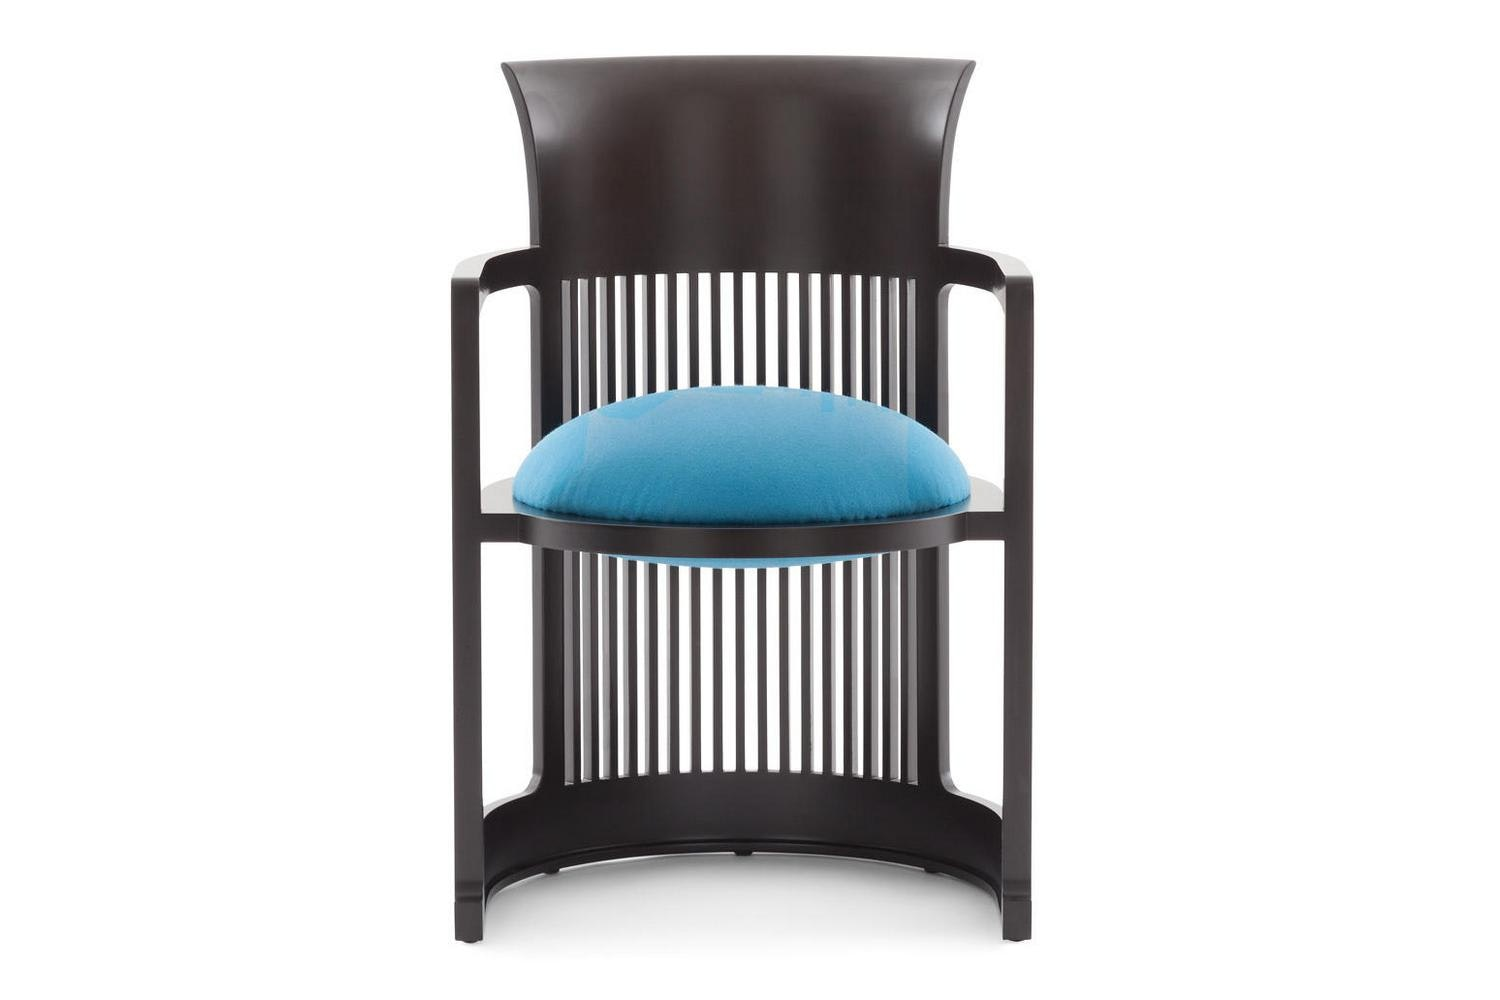 606 Barrel Chair by Frank Lloyd Wright for Cassina